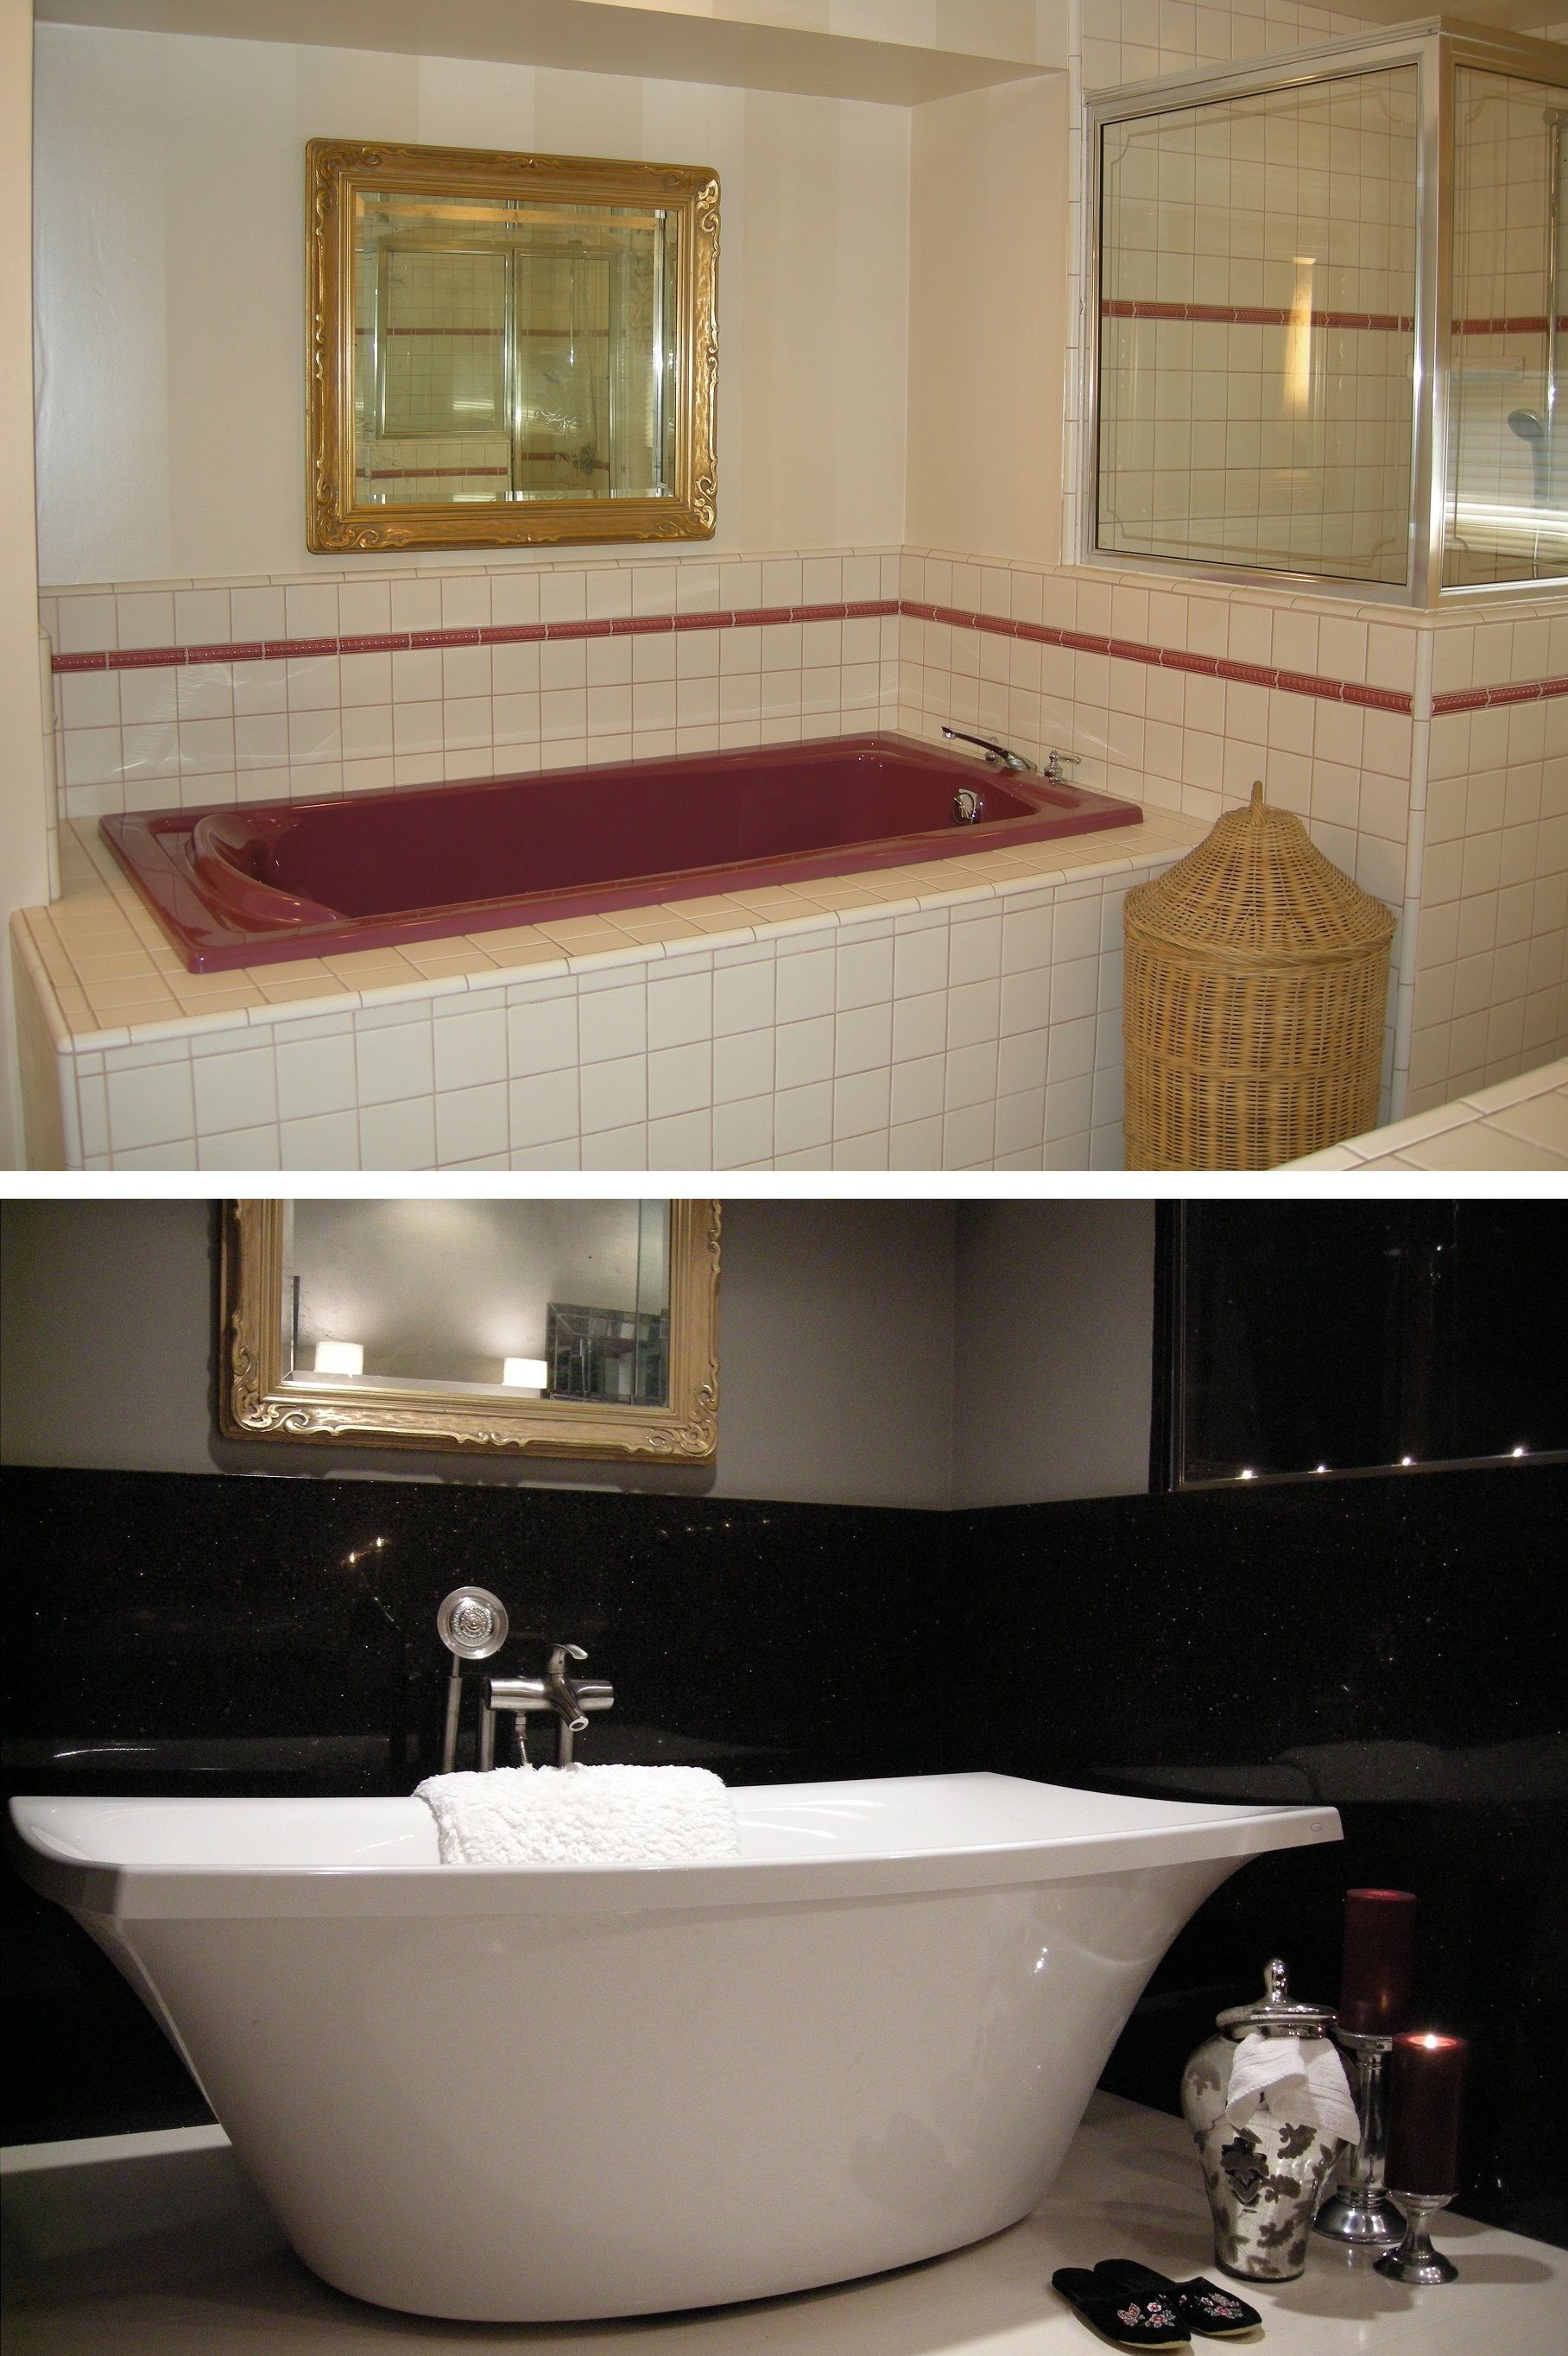 #Bathroom #bathtub #remodel Before And After By Granite Transformations